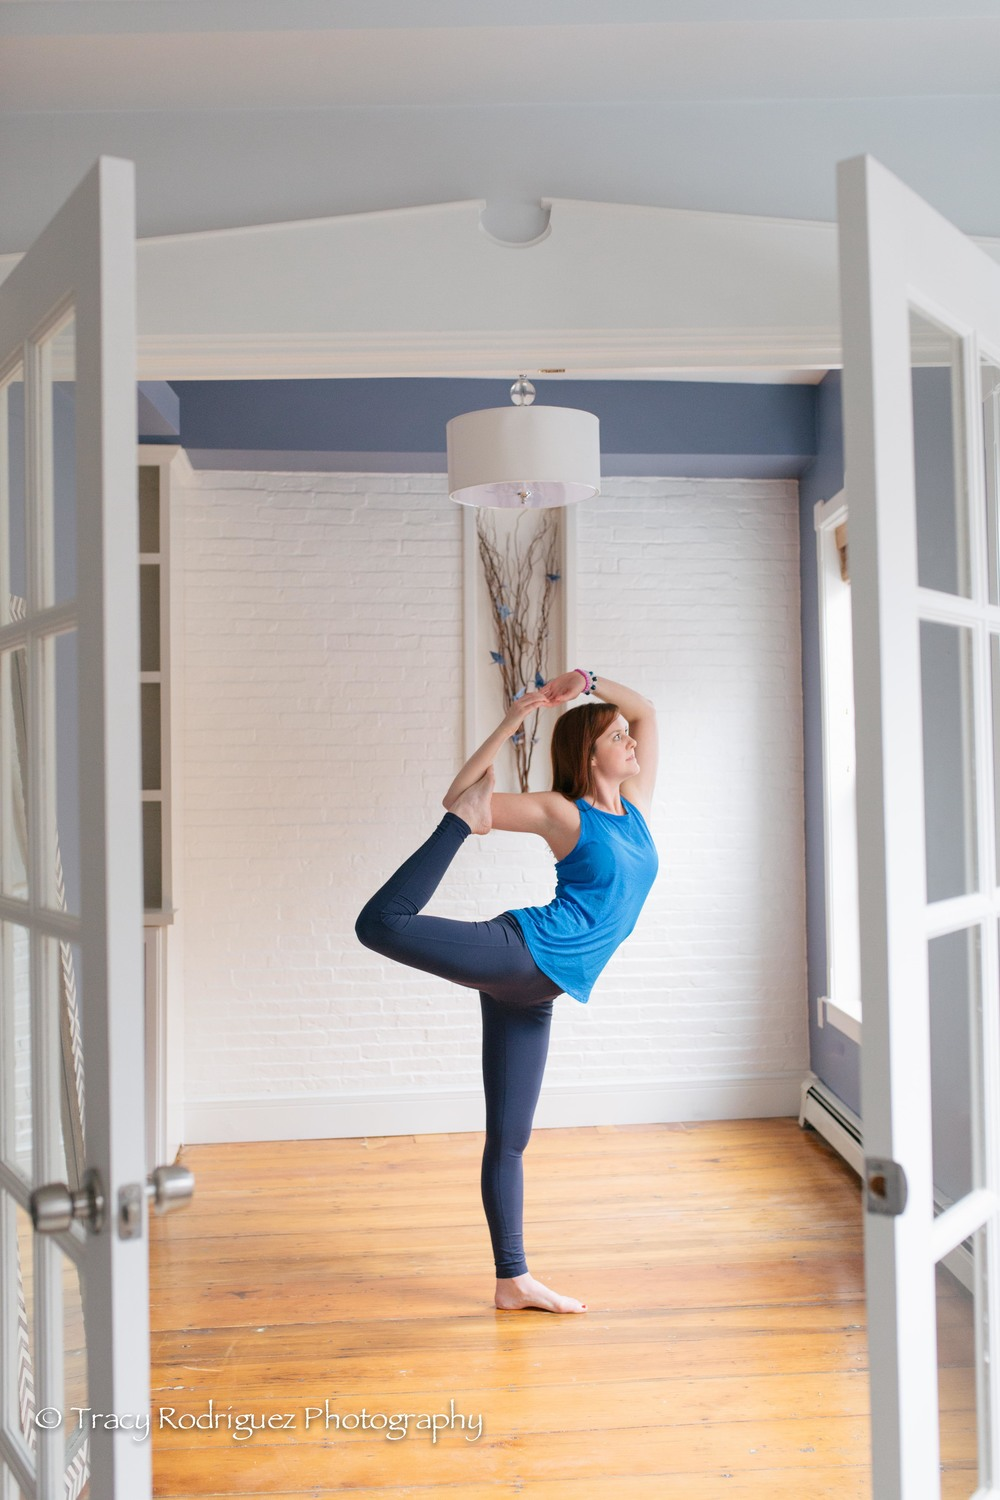 TracyRodriguezPhotography-HEATHER-WHITE-YOGA-9.jpg